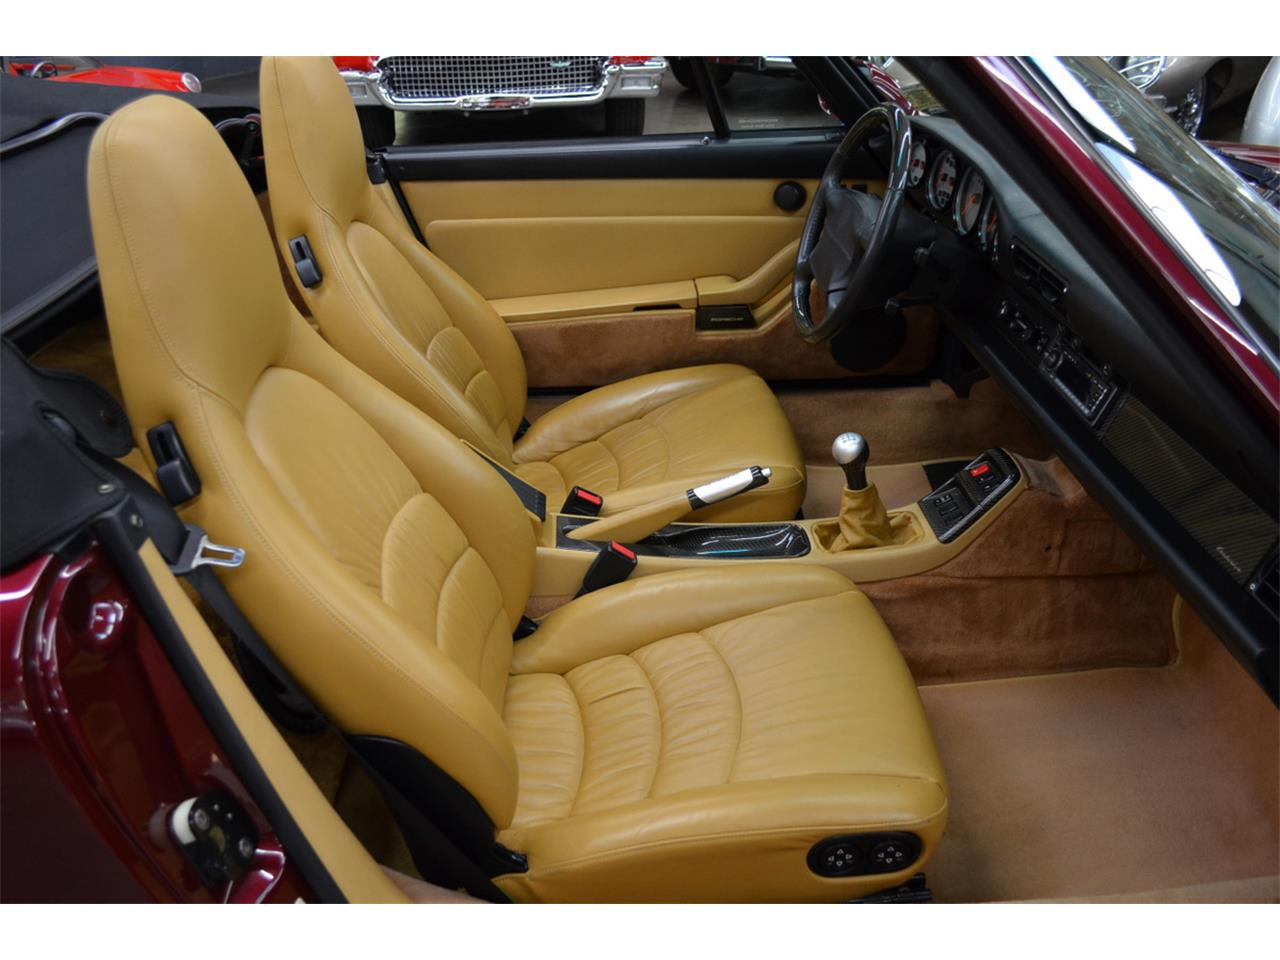 Large Picture of '97 911 Carrera located in New York - $79,500.00 - QG4T